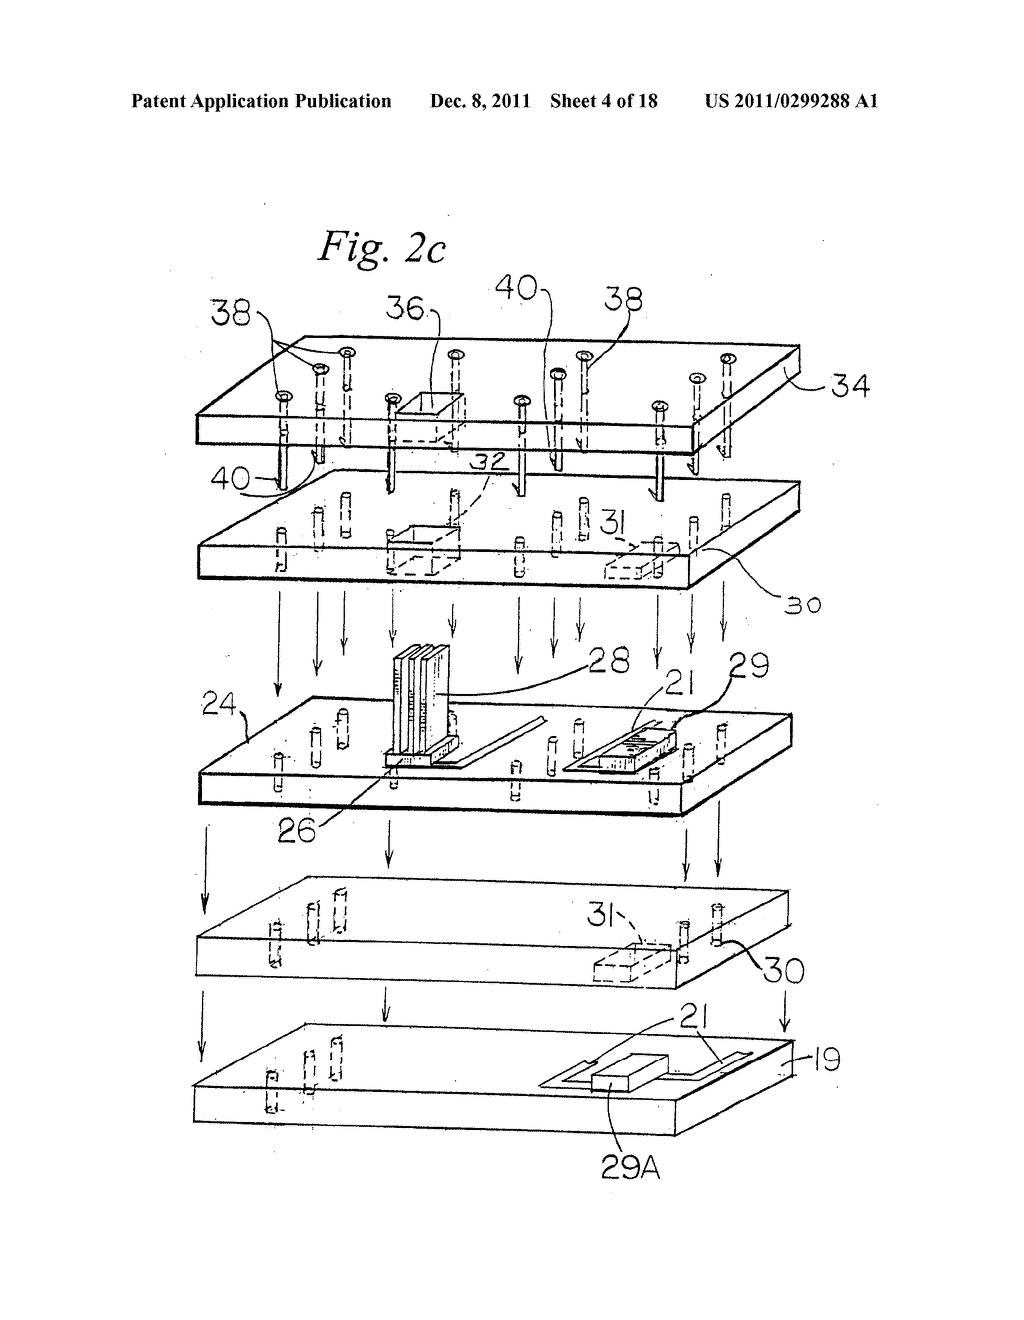 Solder and Lead Free Electronic Circuit and Method of Manufacturing Same - diagram, schematic, and image 05